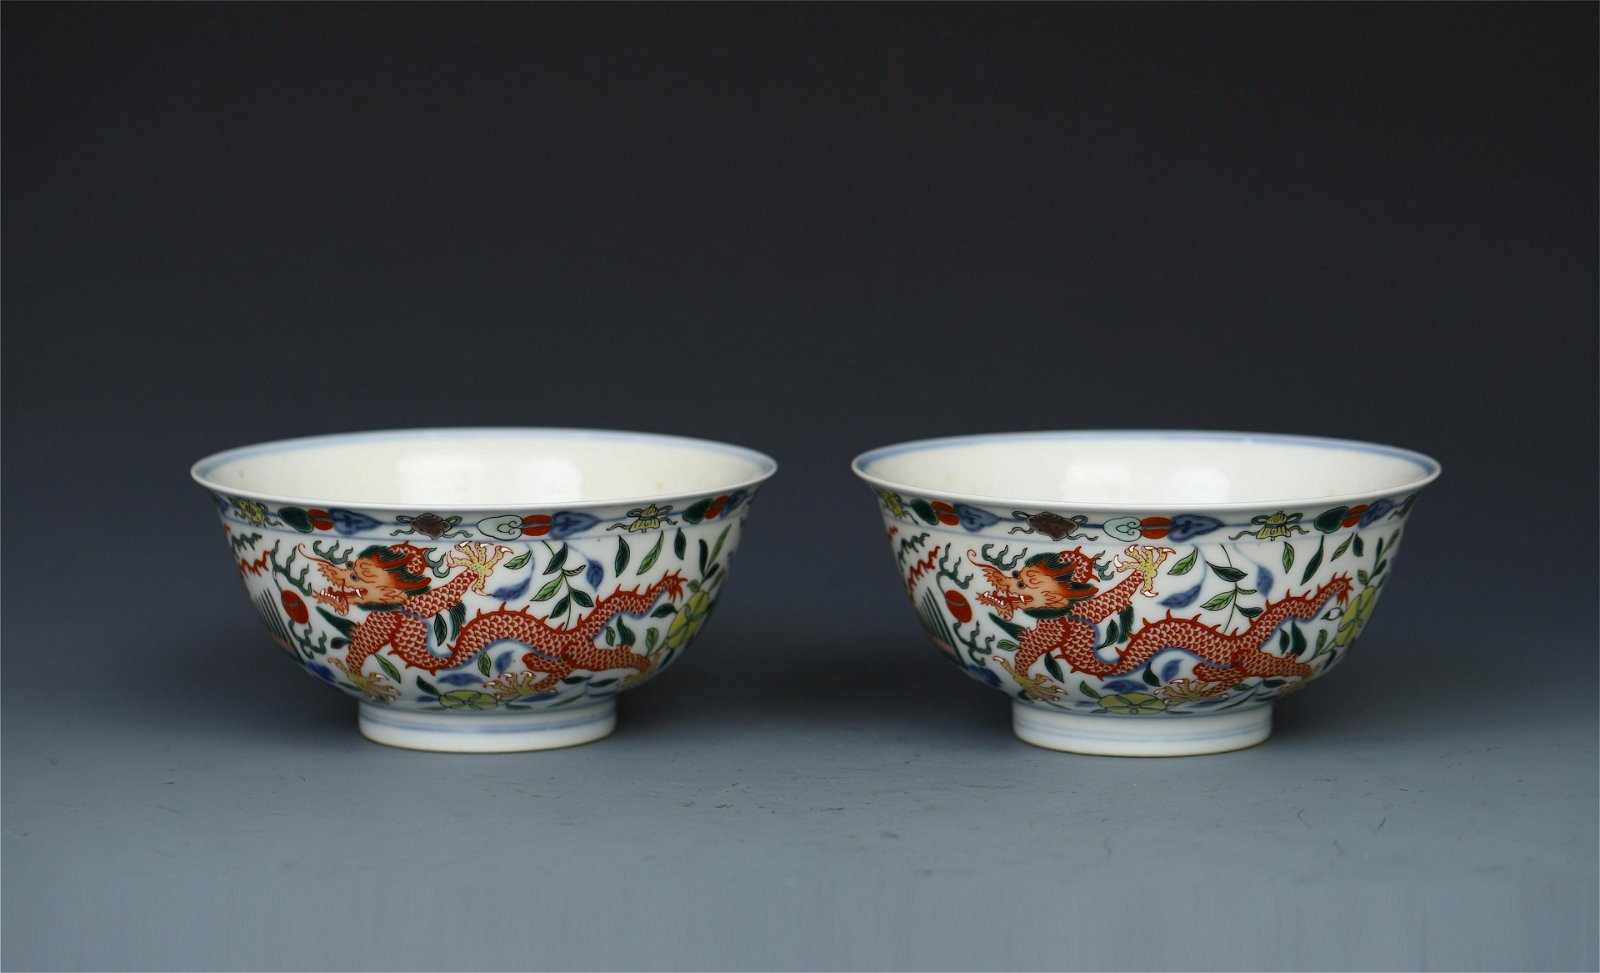 PAIR OF CHINESE PORCELAIN BLUE AND WHITE WUCAI DRAGON